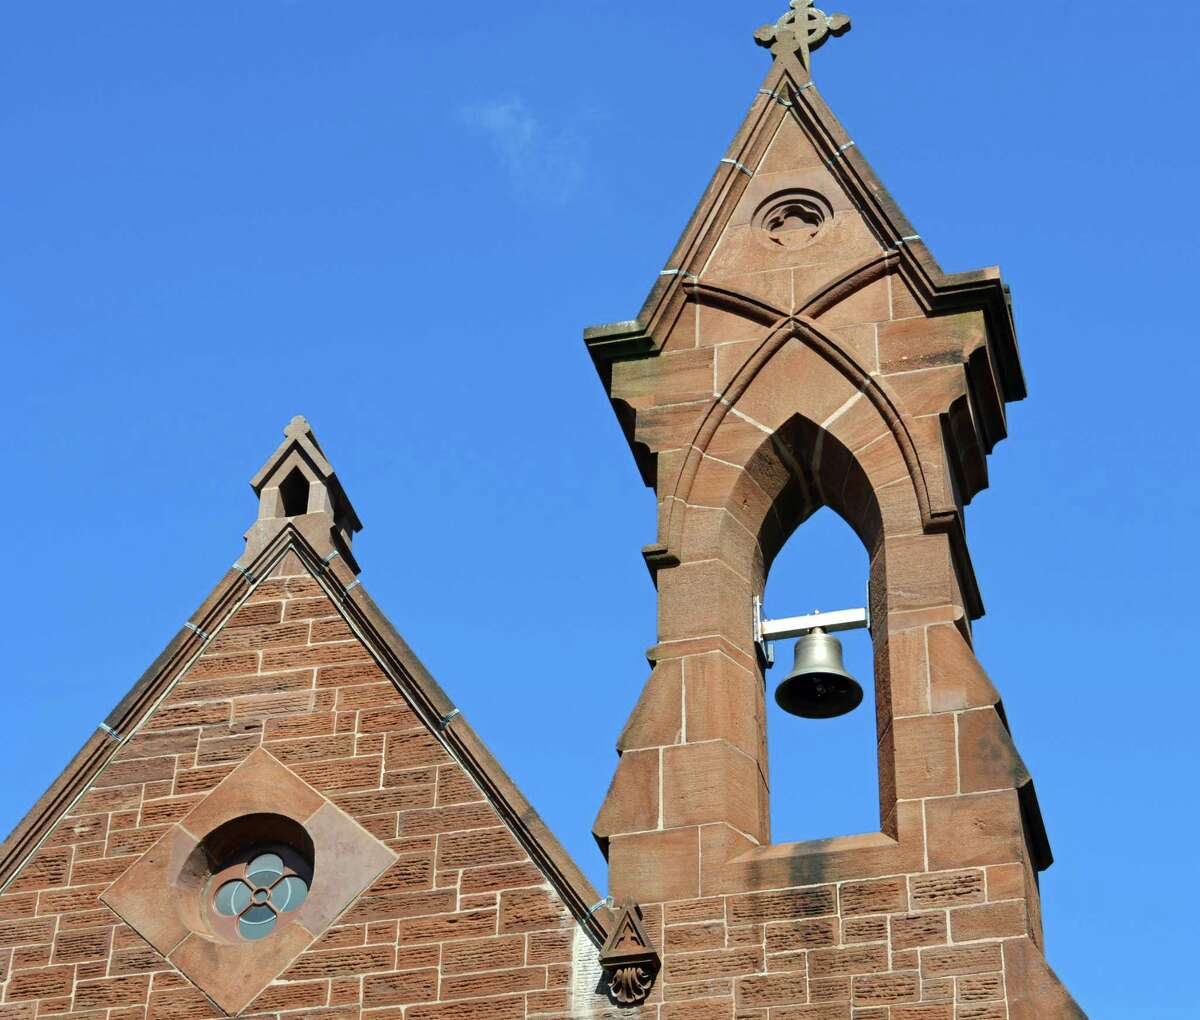 Meneely Bells are world renowned for their clarity of sound.